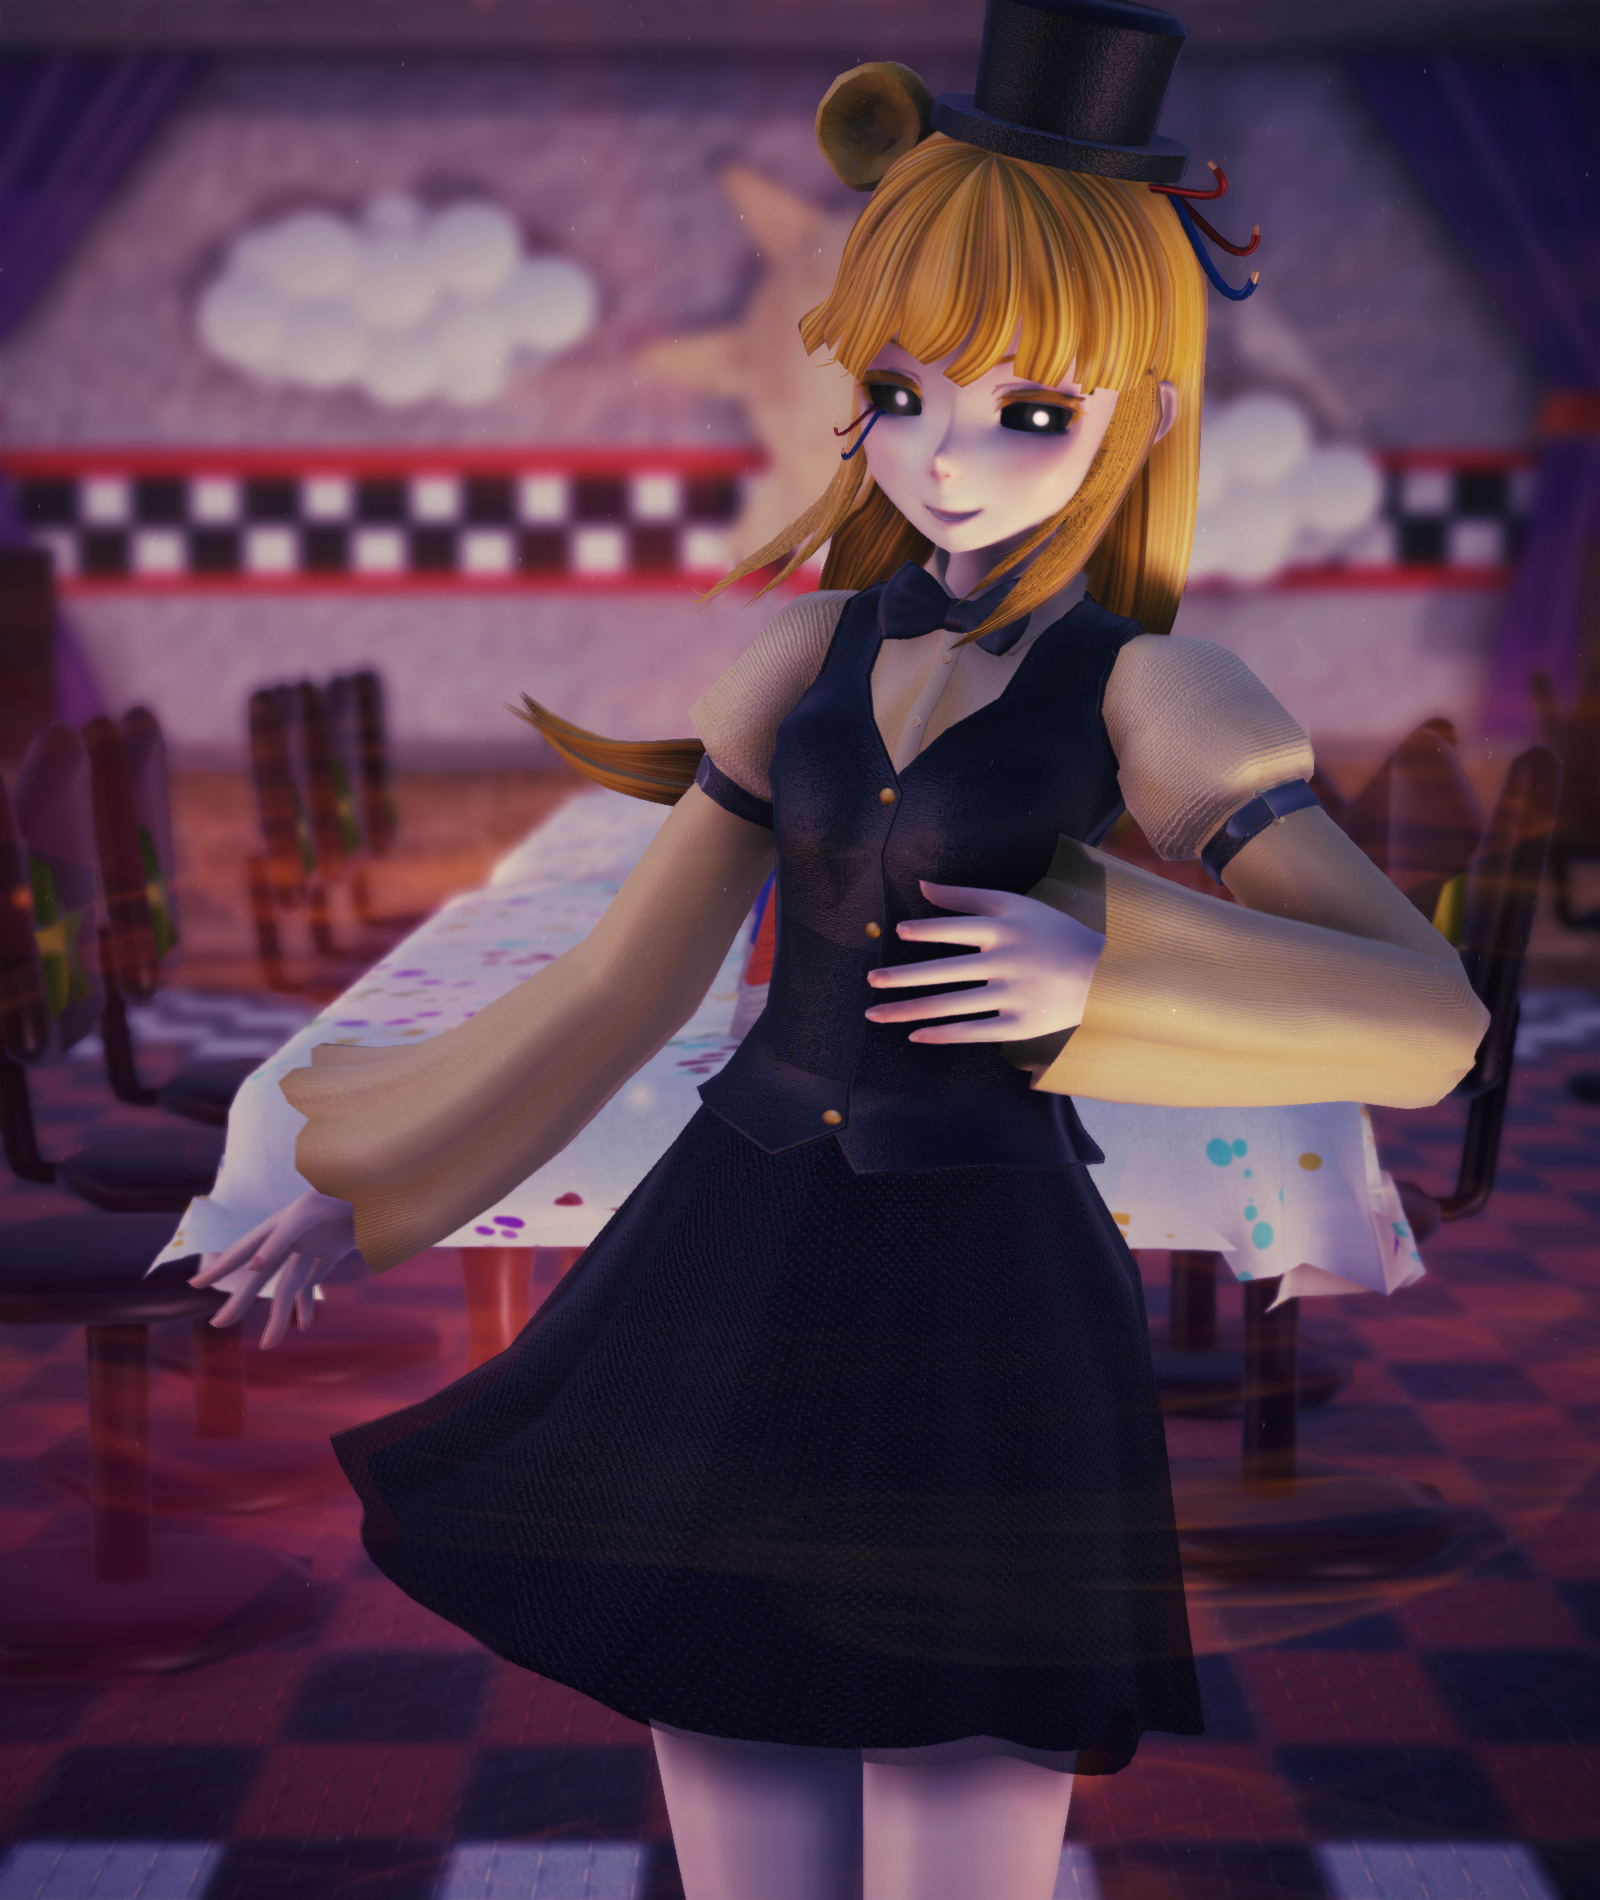 MMD] Hi There~ [FNAF] By AngelinaSchmidt On